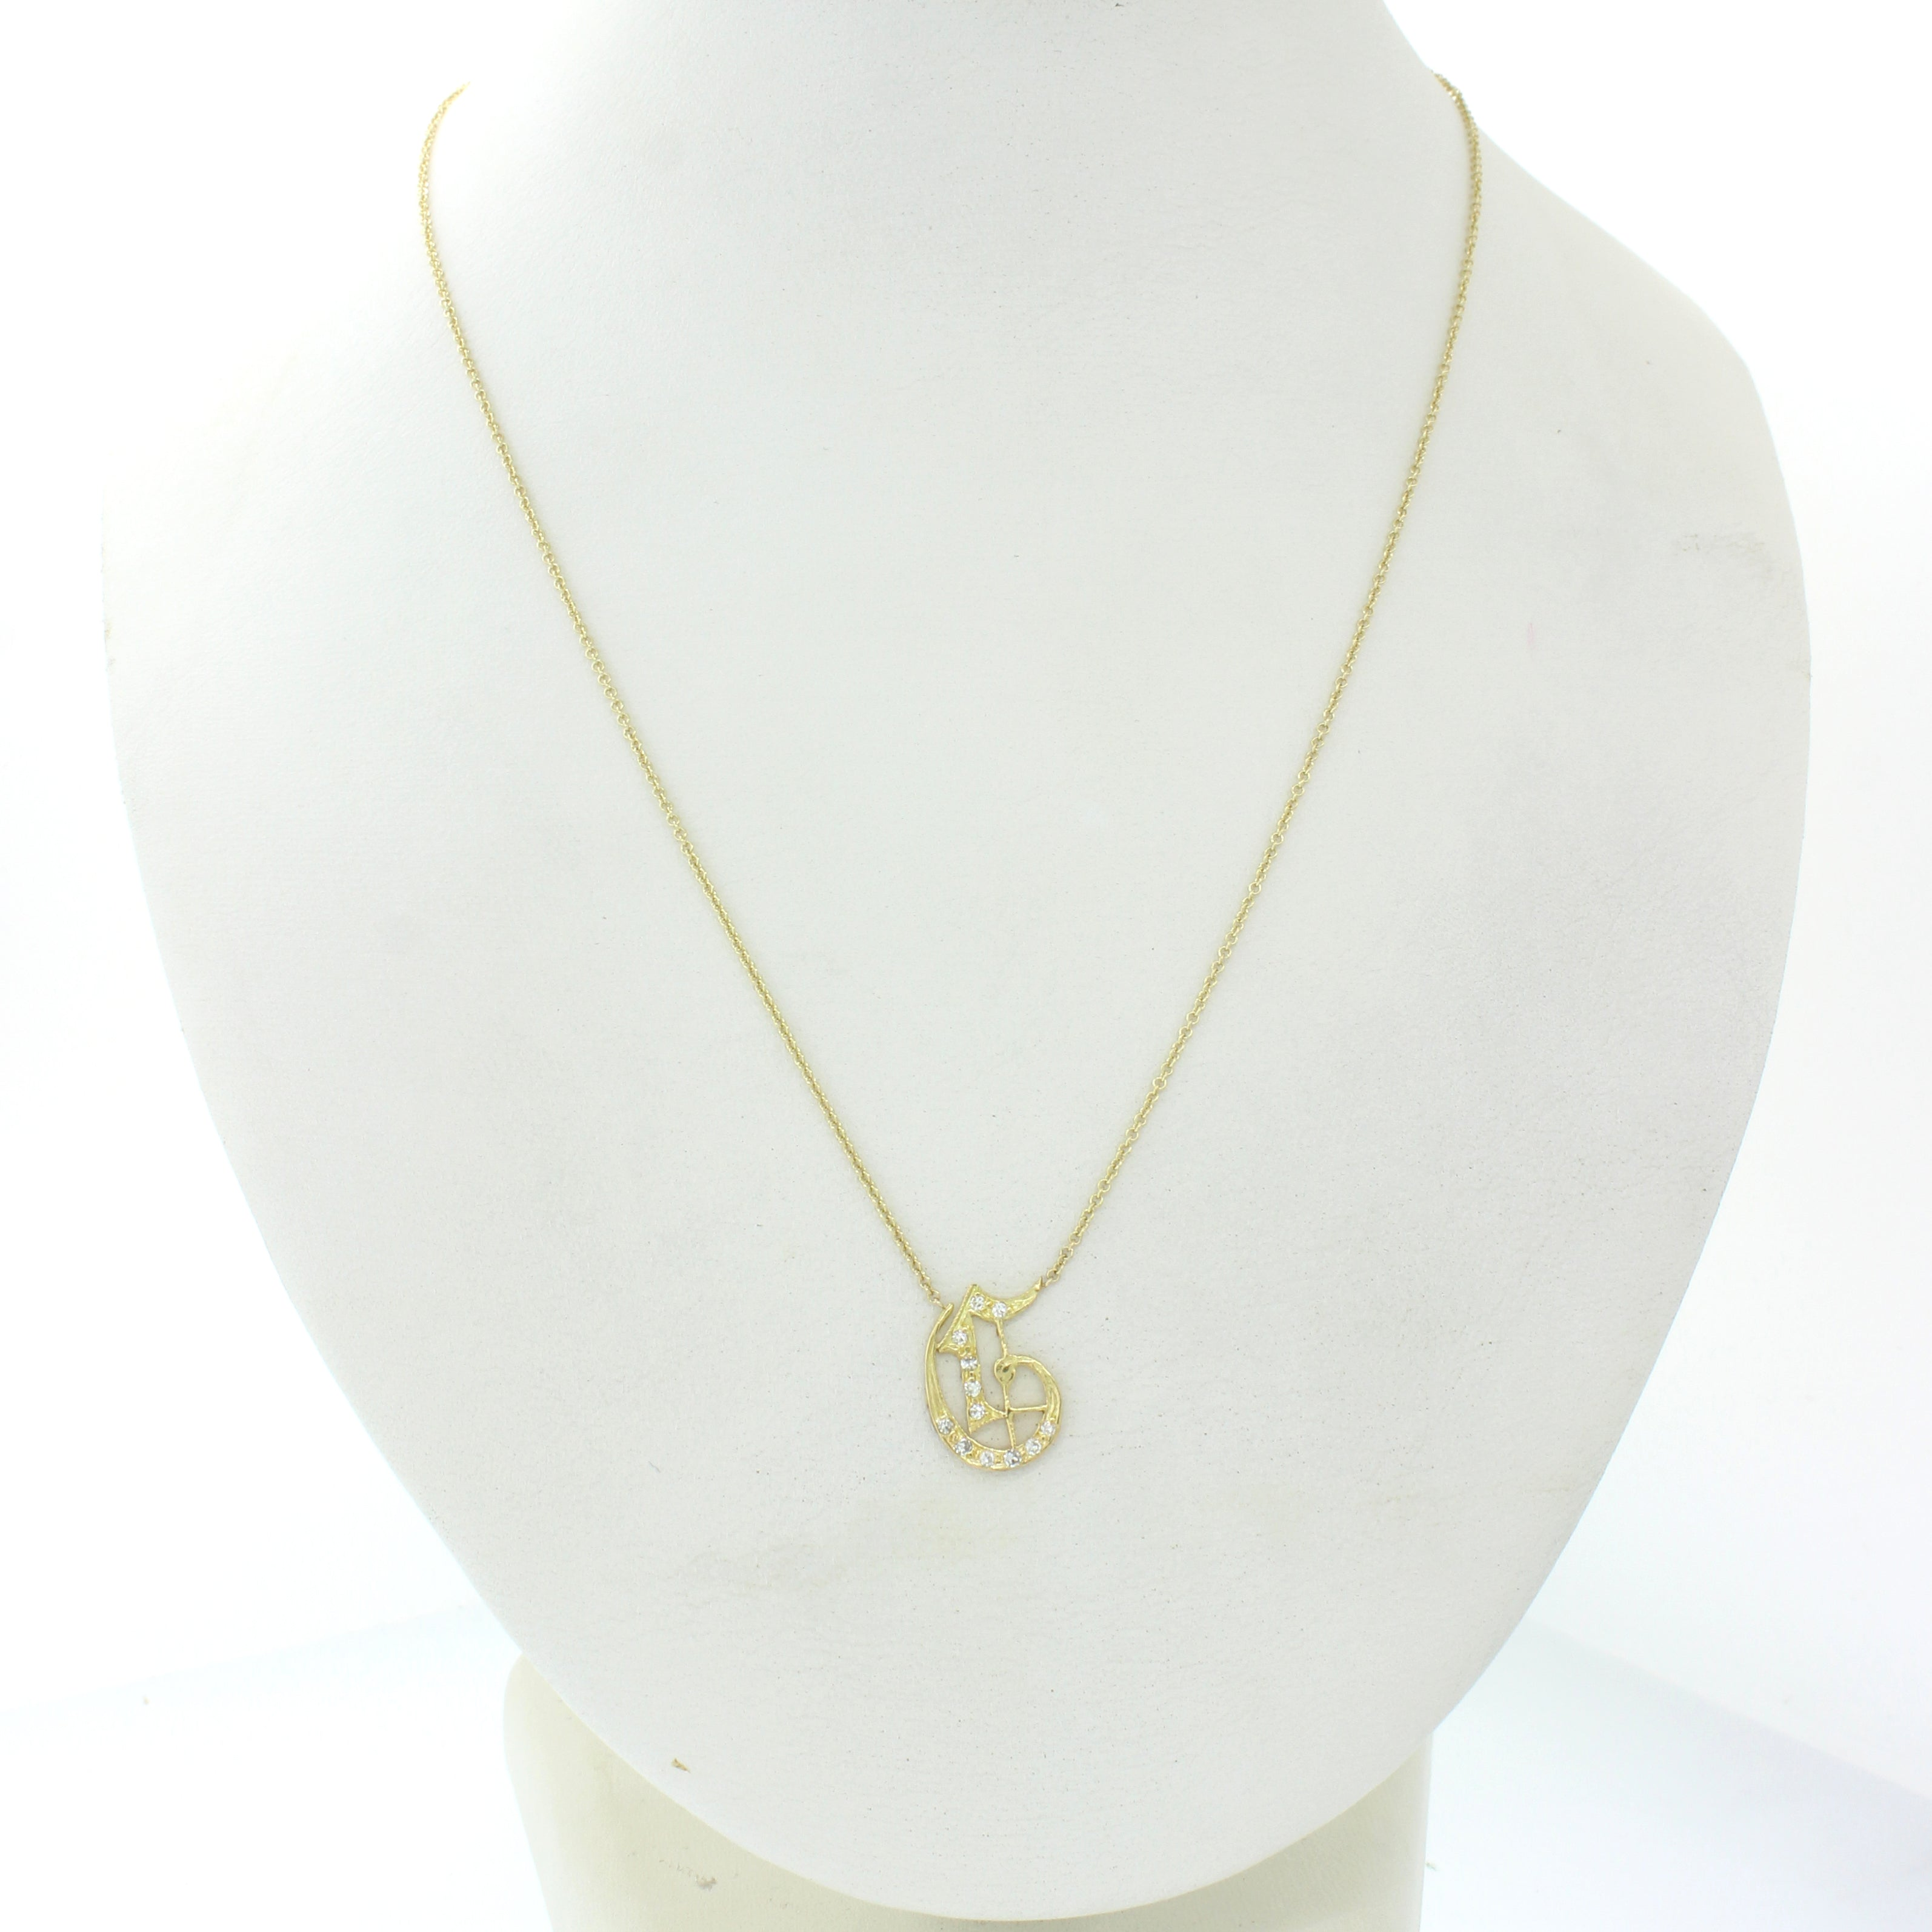 Vintage 14k Yellow Gold .10ct Diamond G Initial Monogram Pendant Chain Necklace